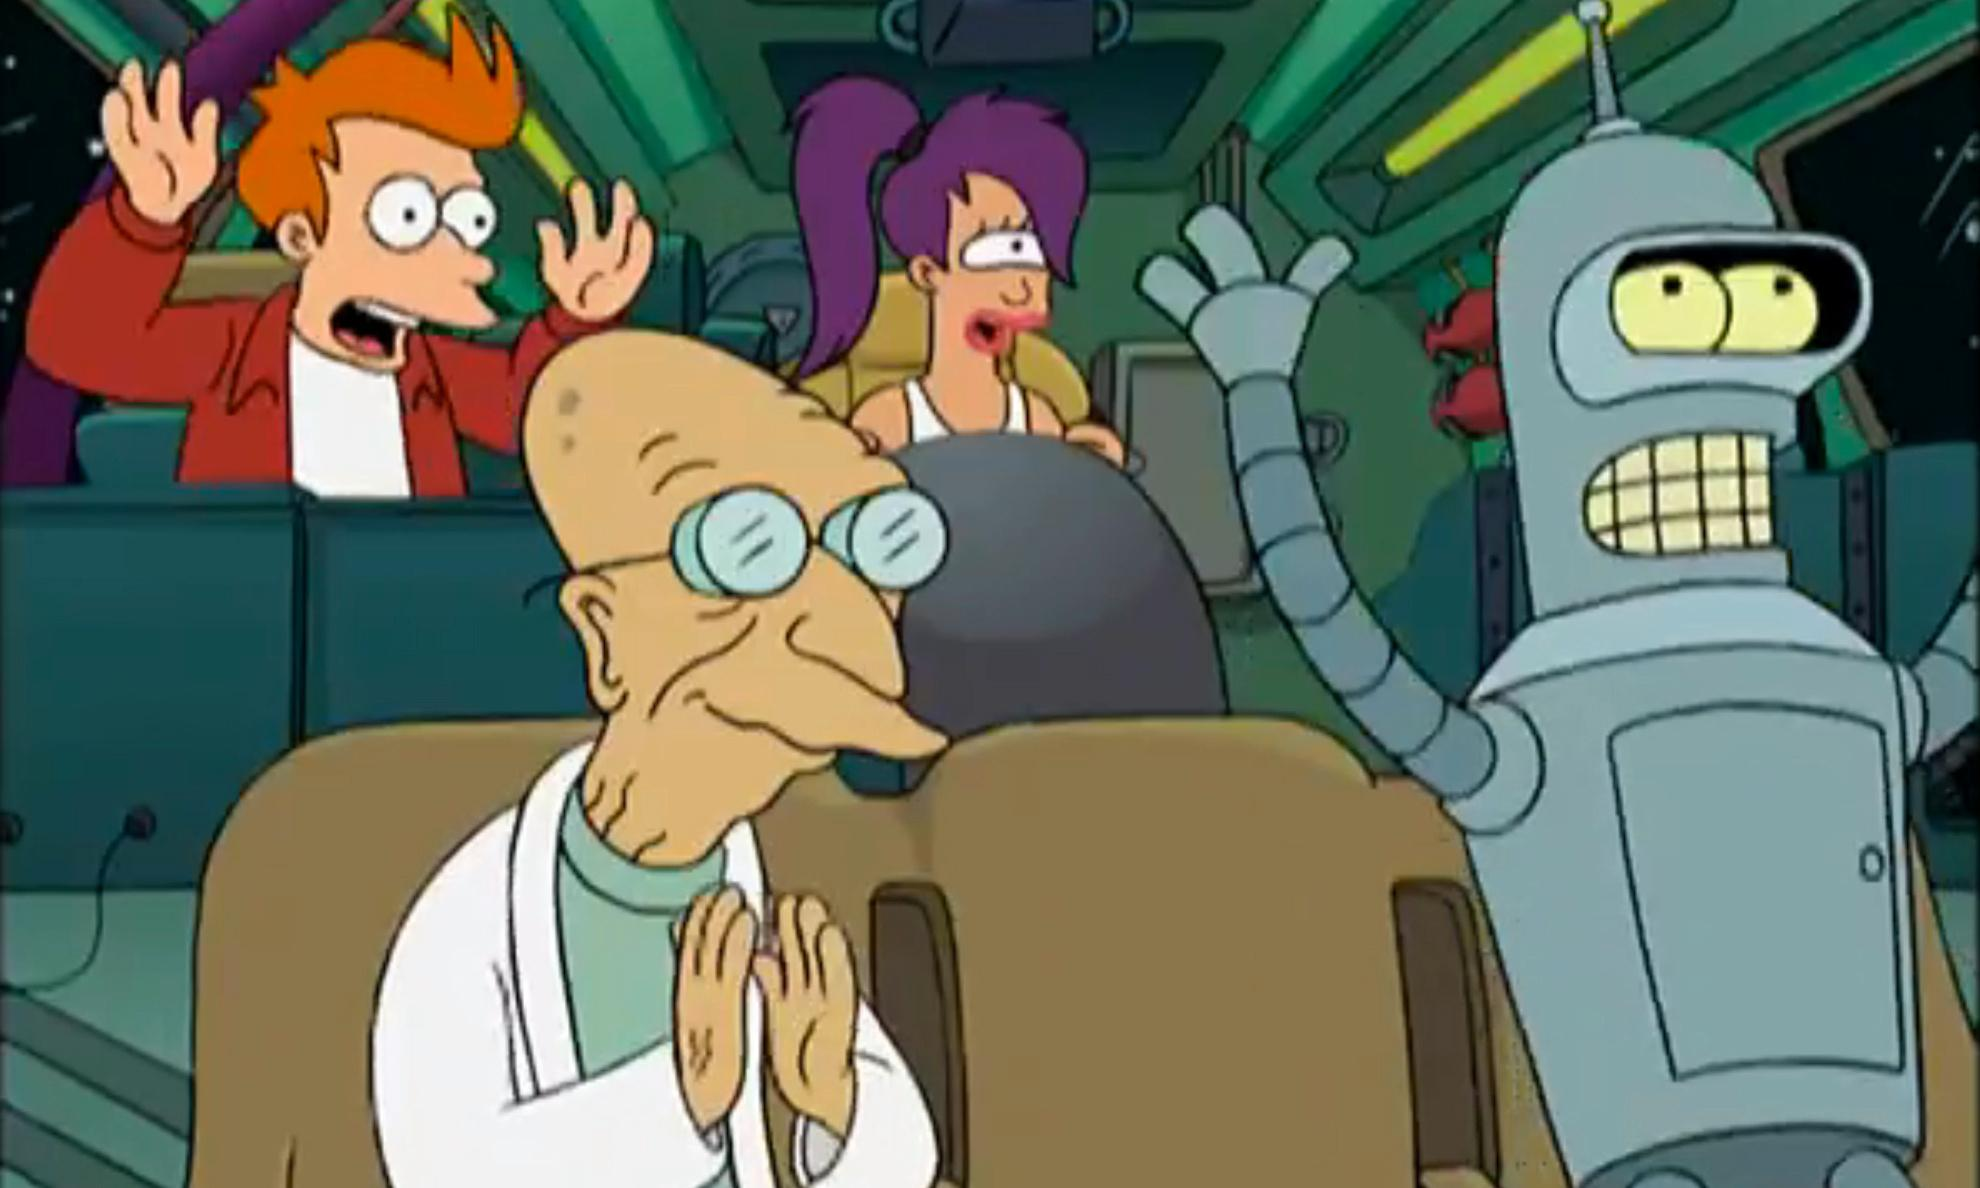 Space oddities: why the Futurama reboot went from sci-fi to sci-why